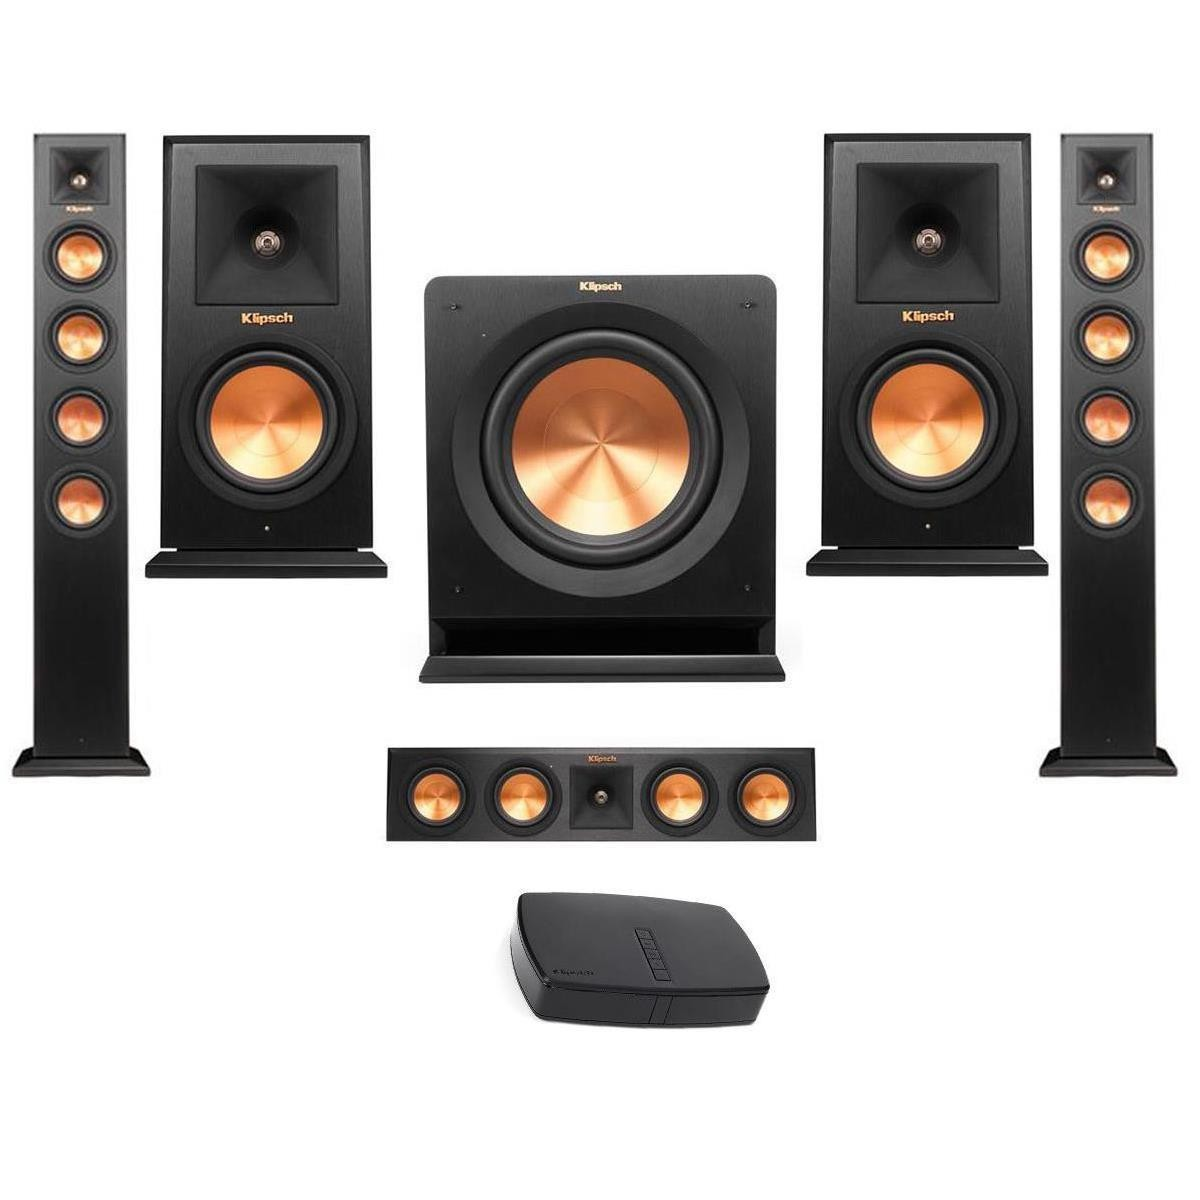 Klipsch Premiere HD Wireless Speakers: (pair) RP-440WF Floors + RP-440WC Center + RP-110WSW Sub + RP-140WM Book $1499 + free shipping